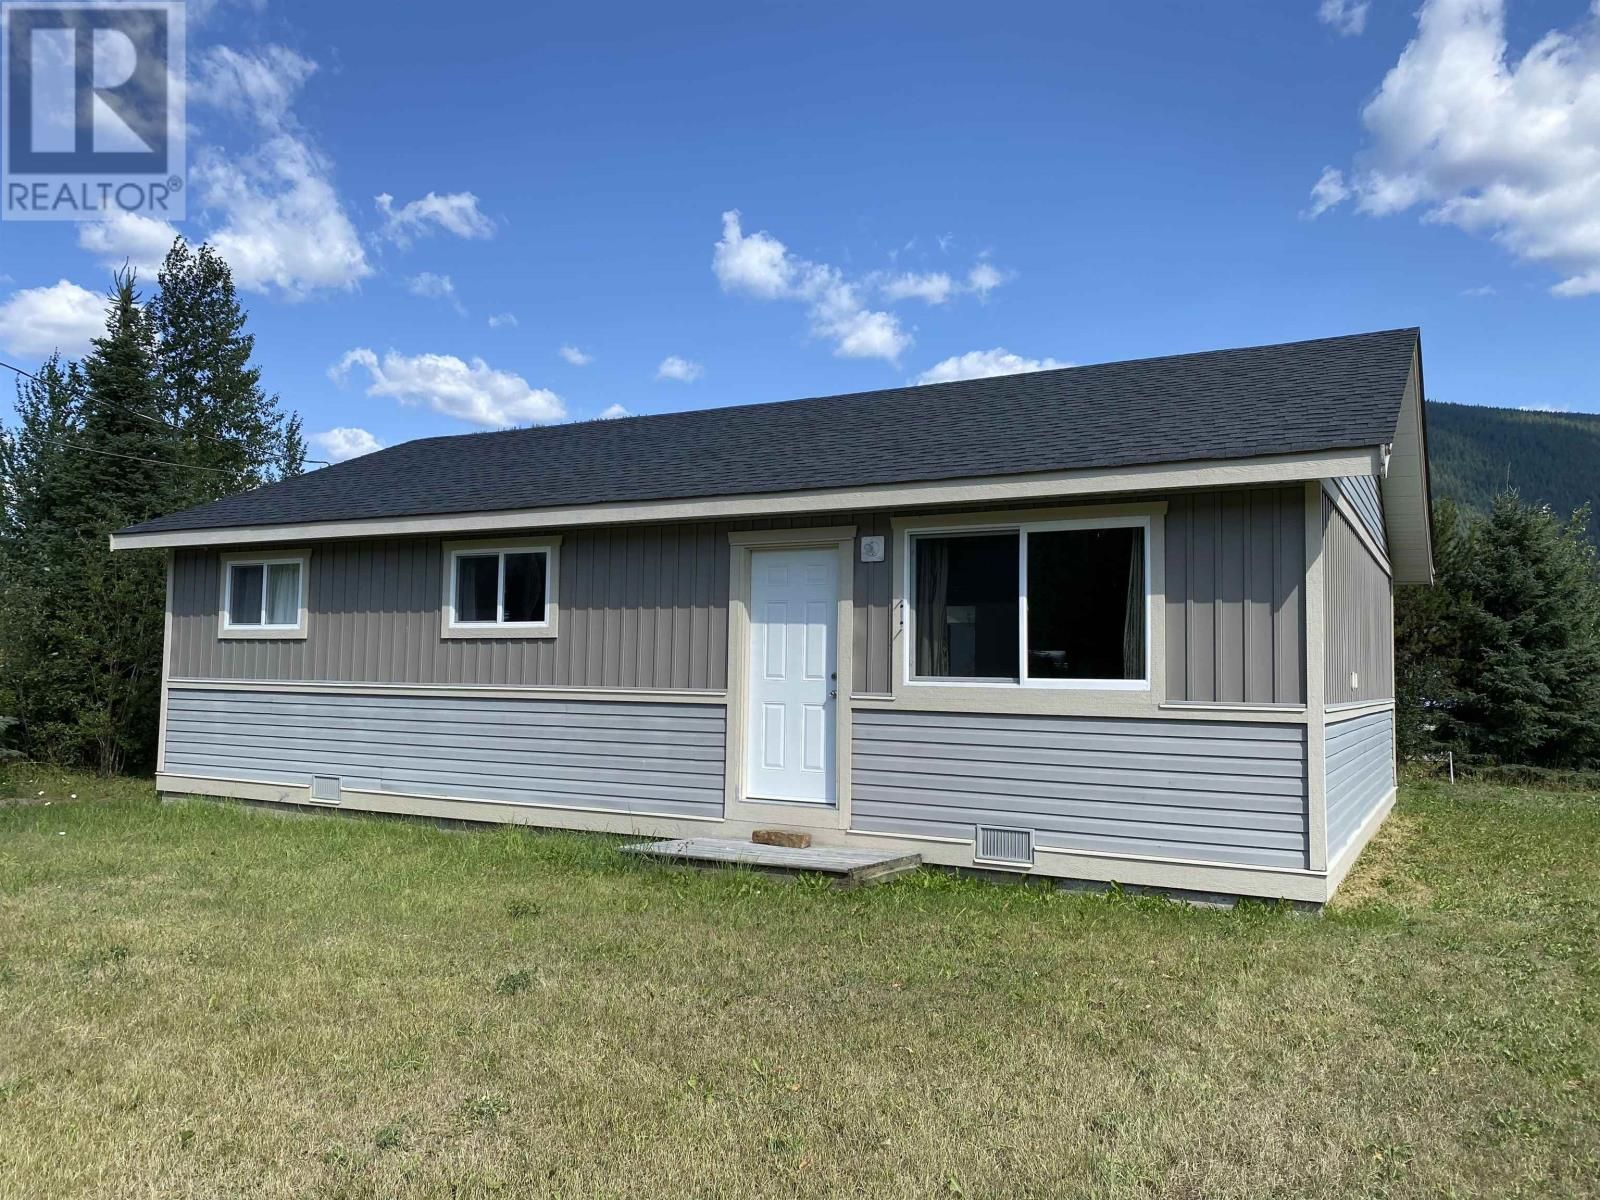 Main Photo: 654 B ROAD in Canim Lake: House for sale : MLS®# R2612413